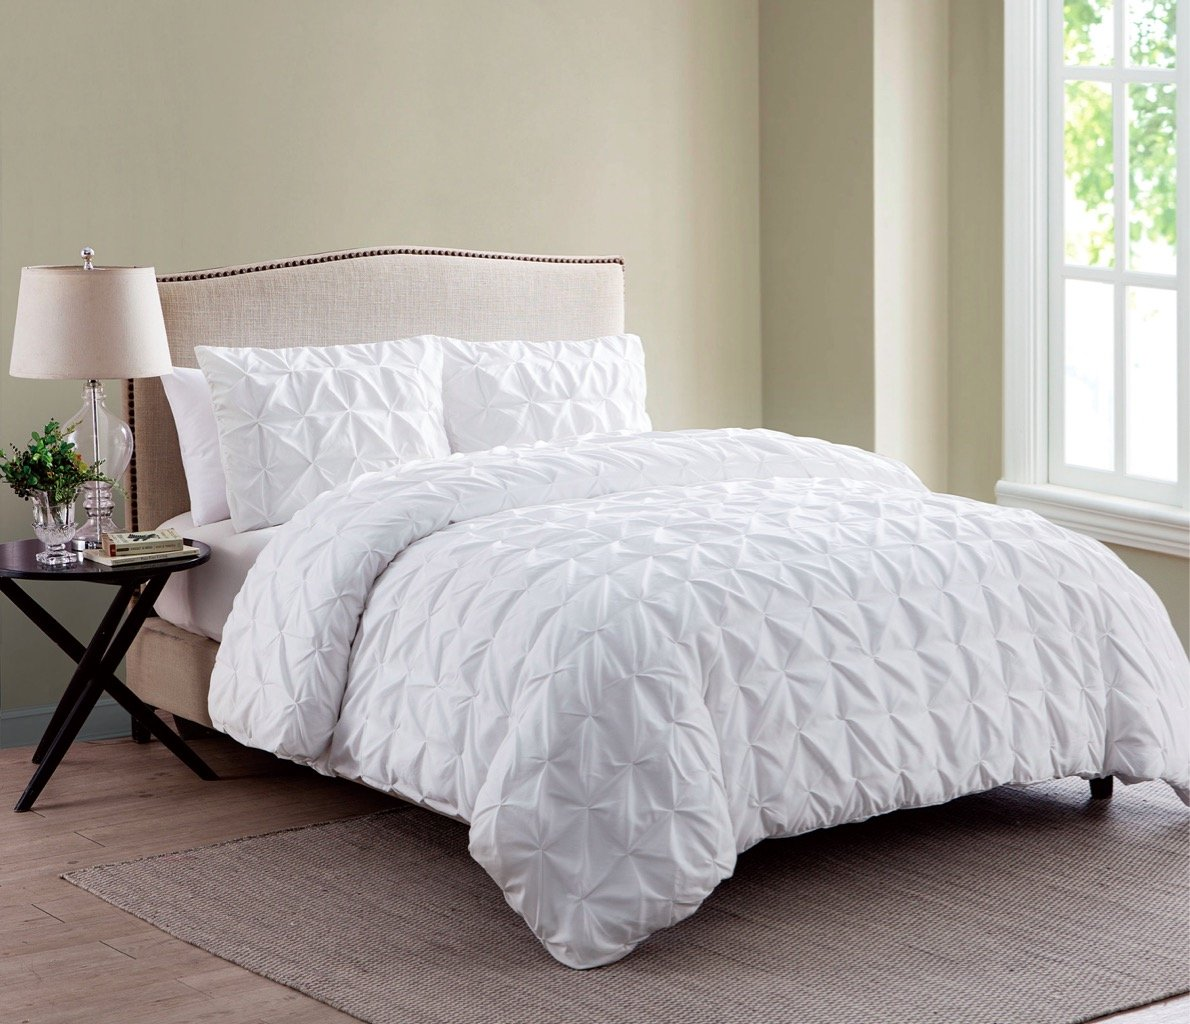 chic piece home pinched pinch decor queen veronica cover a night dp white duvet set nice pintuck pleat